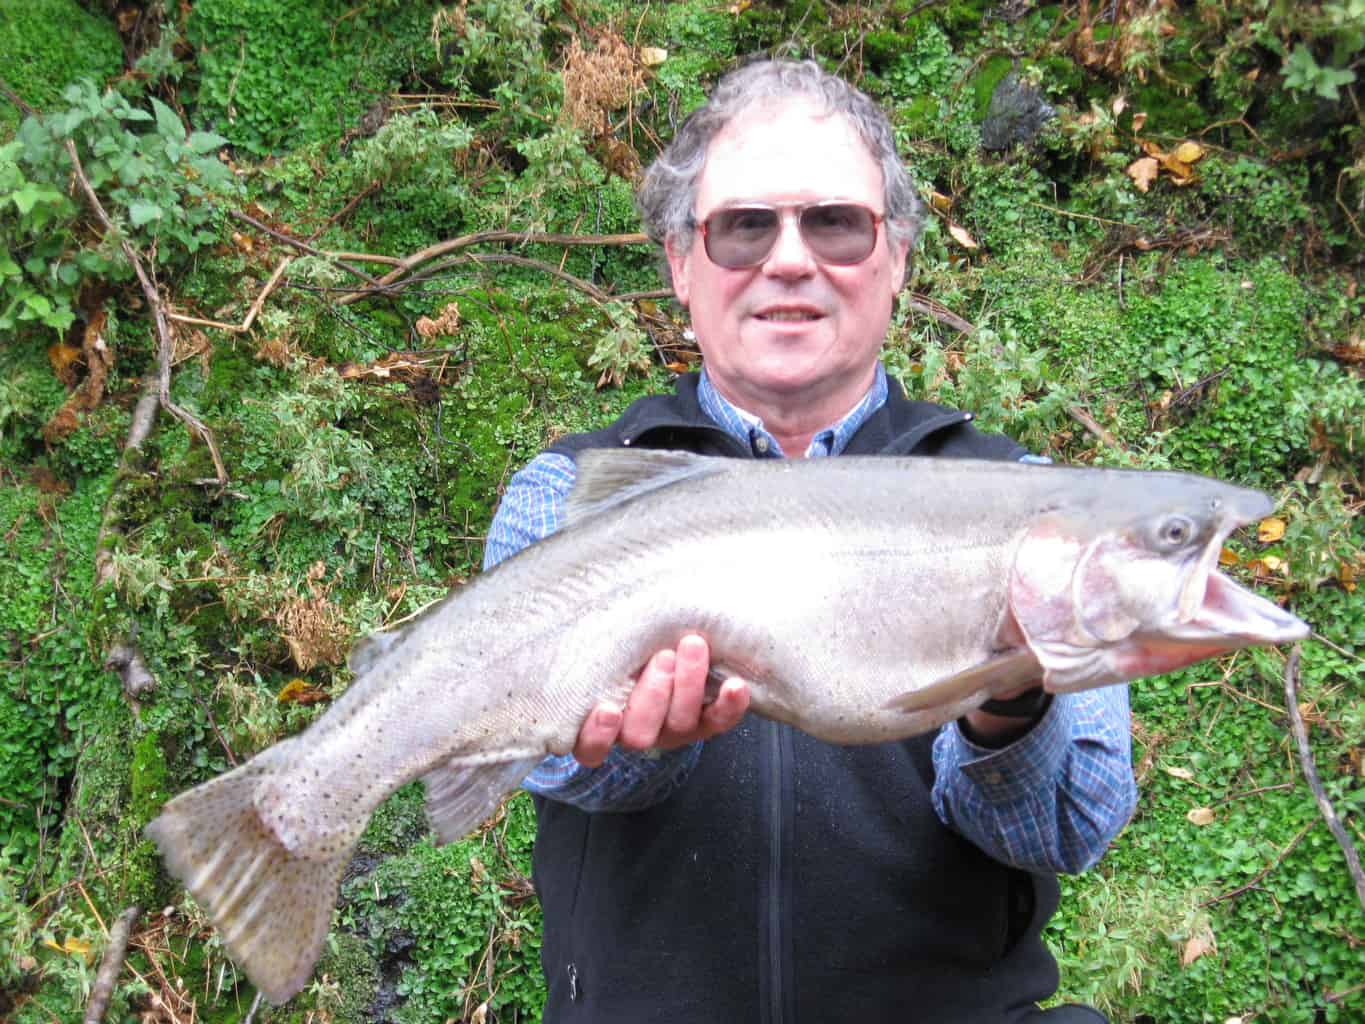 Angler holds up giant 10-pound Lahontan cutthroat caught at Lenore Lake in Washington